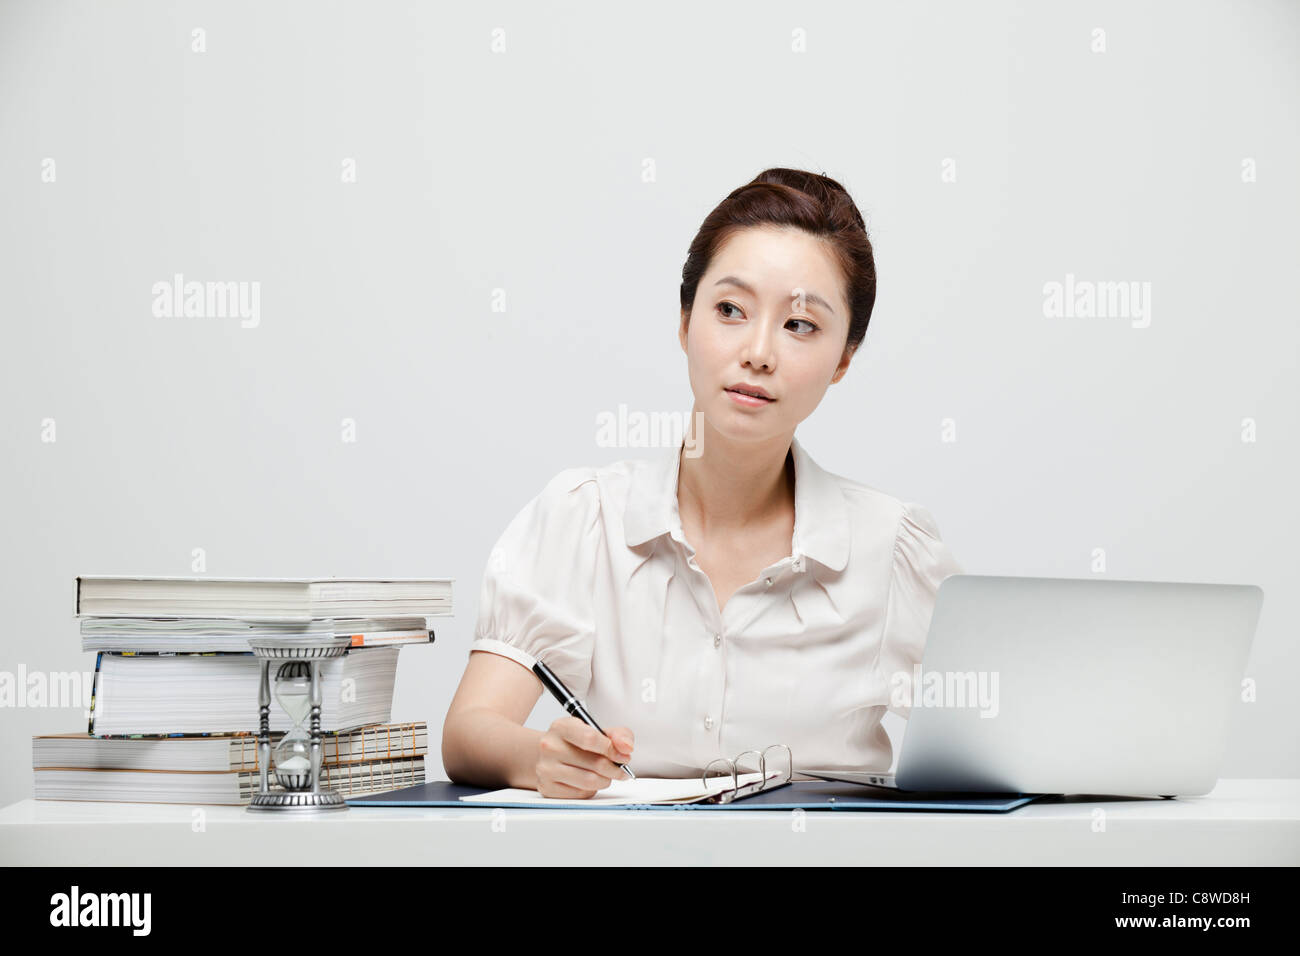 Asian Businesswoman At Desk Writing Document - Stock Image